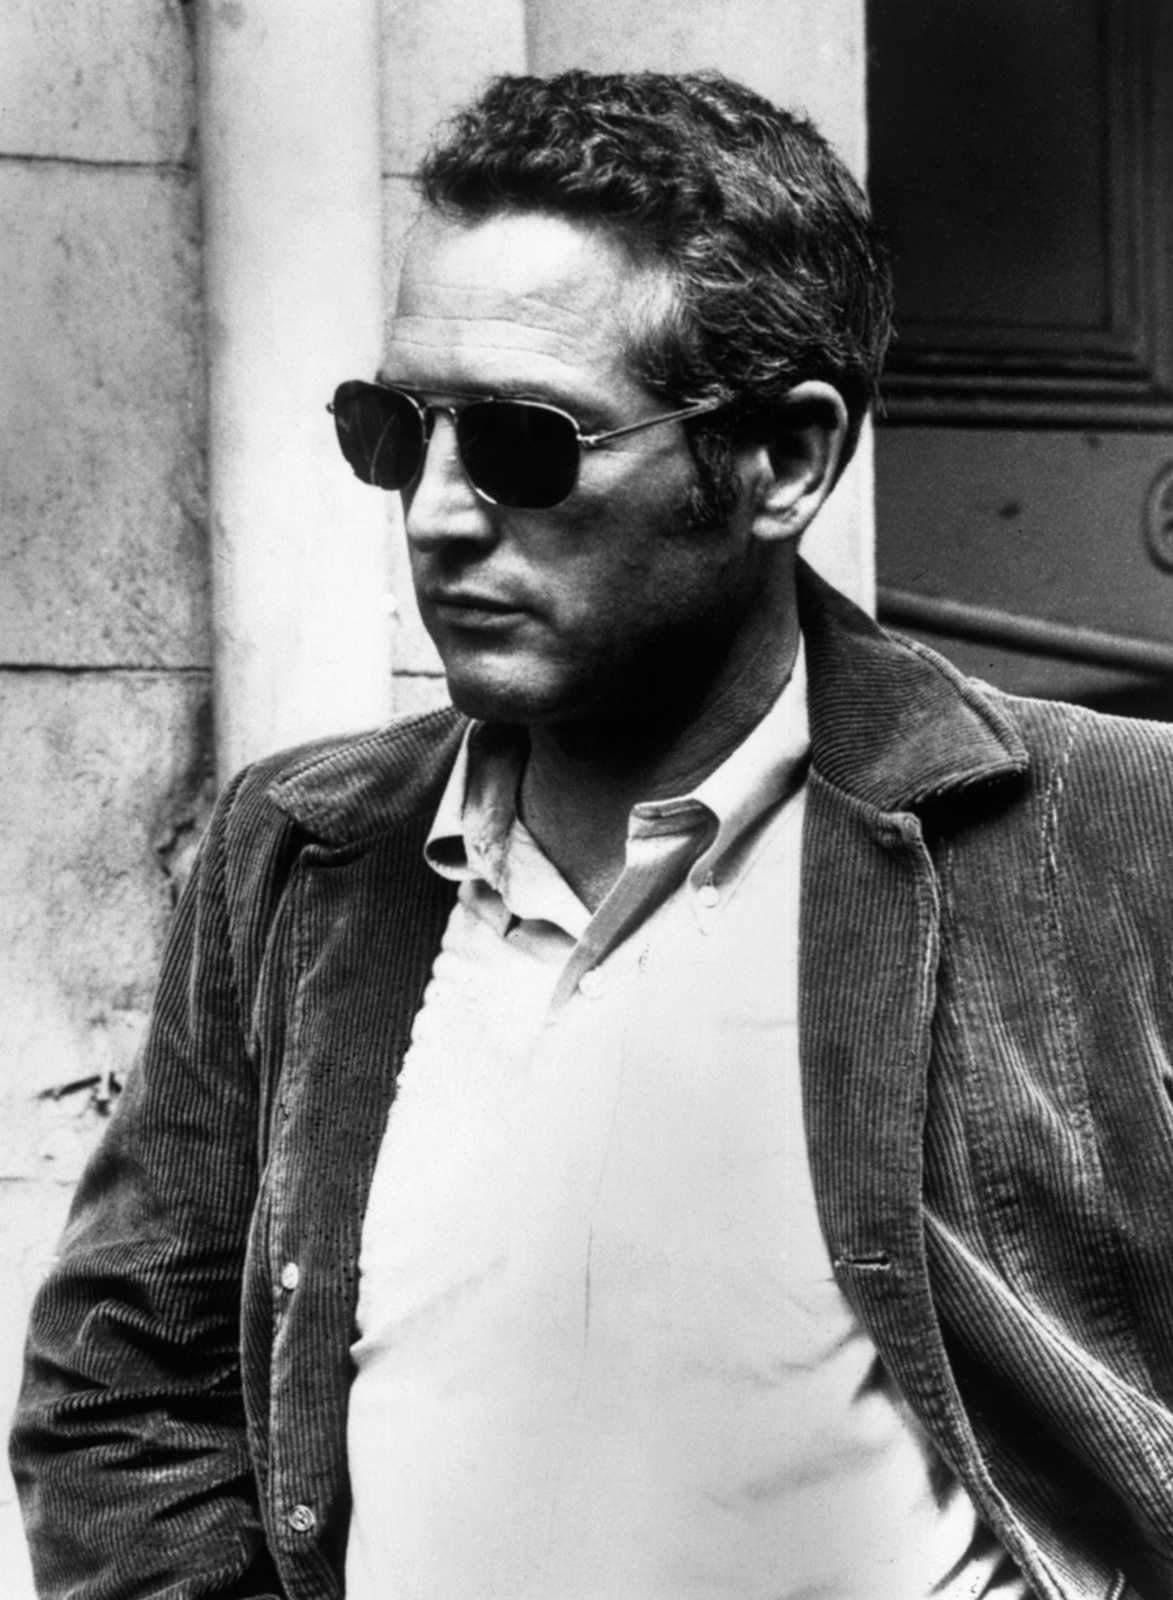 photographingthedead: Paul Newman